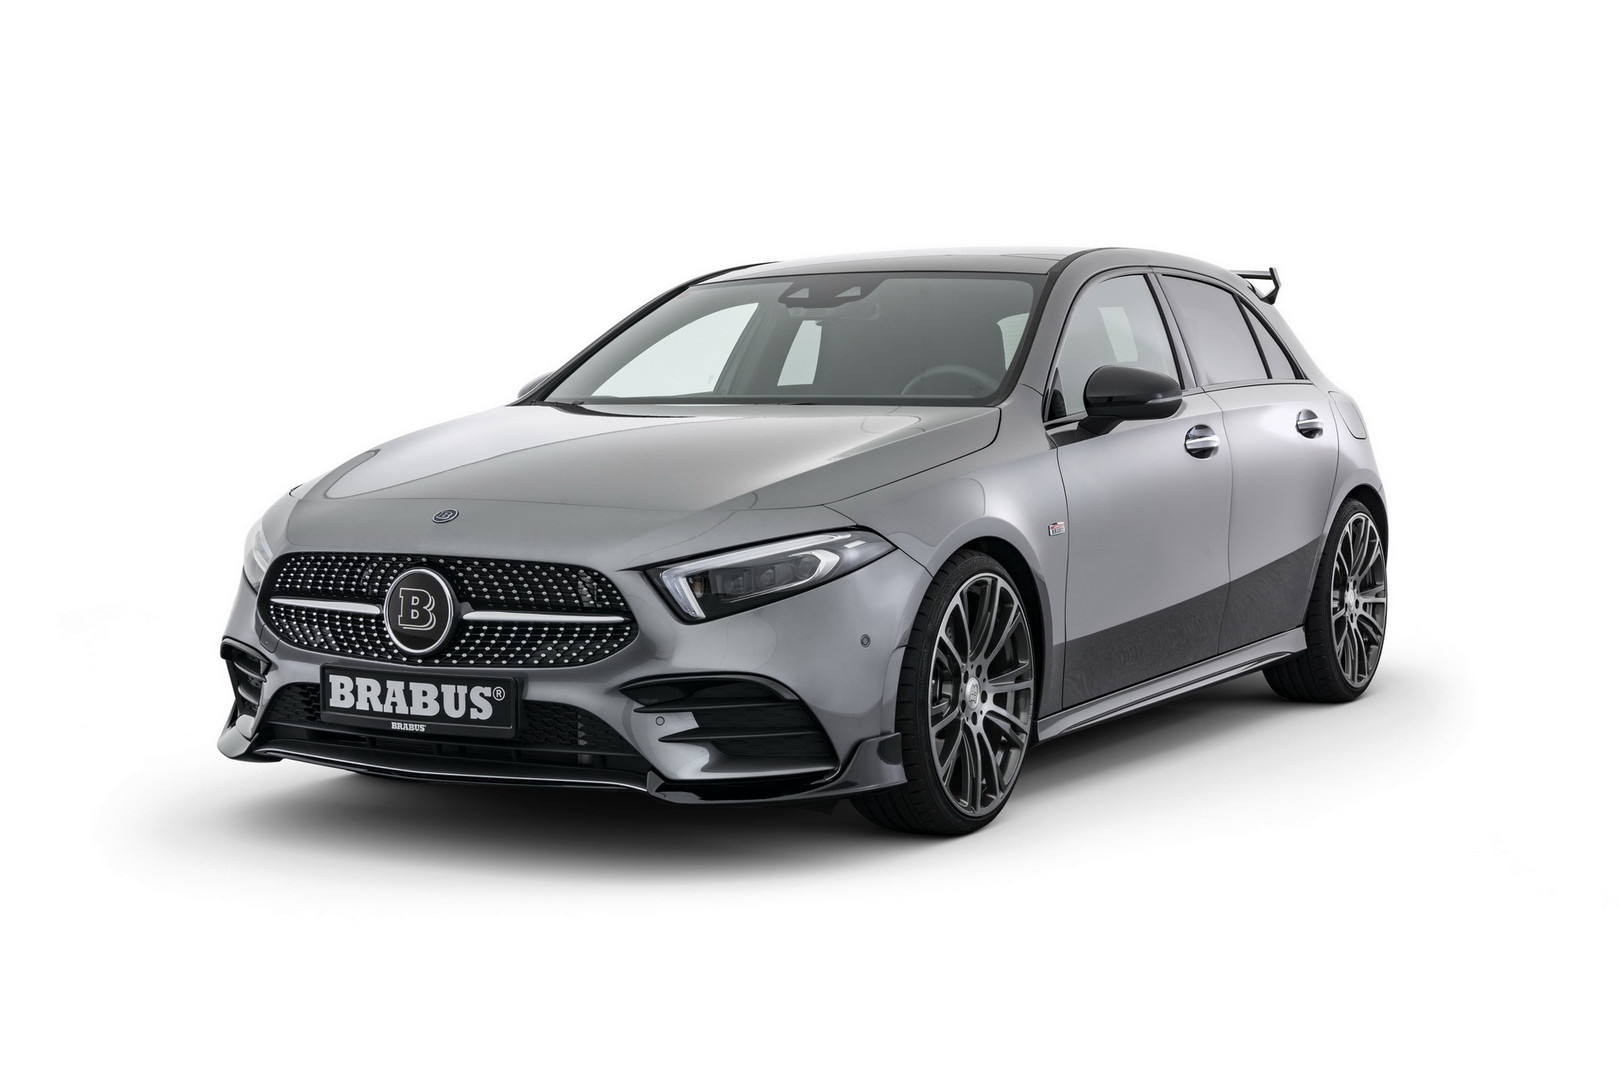 brabus mercedes benz a class revealed gtspirit. Black Bedroom Furniture Sets. Home Design Ideas